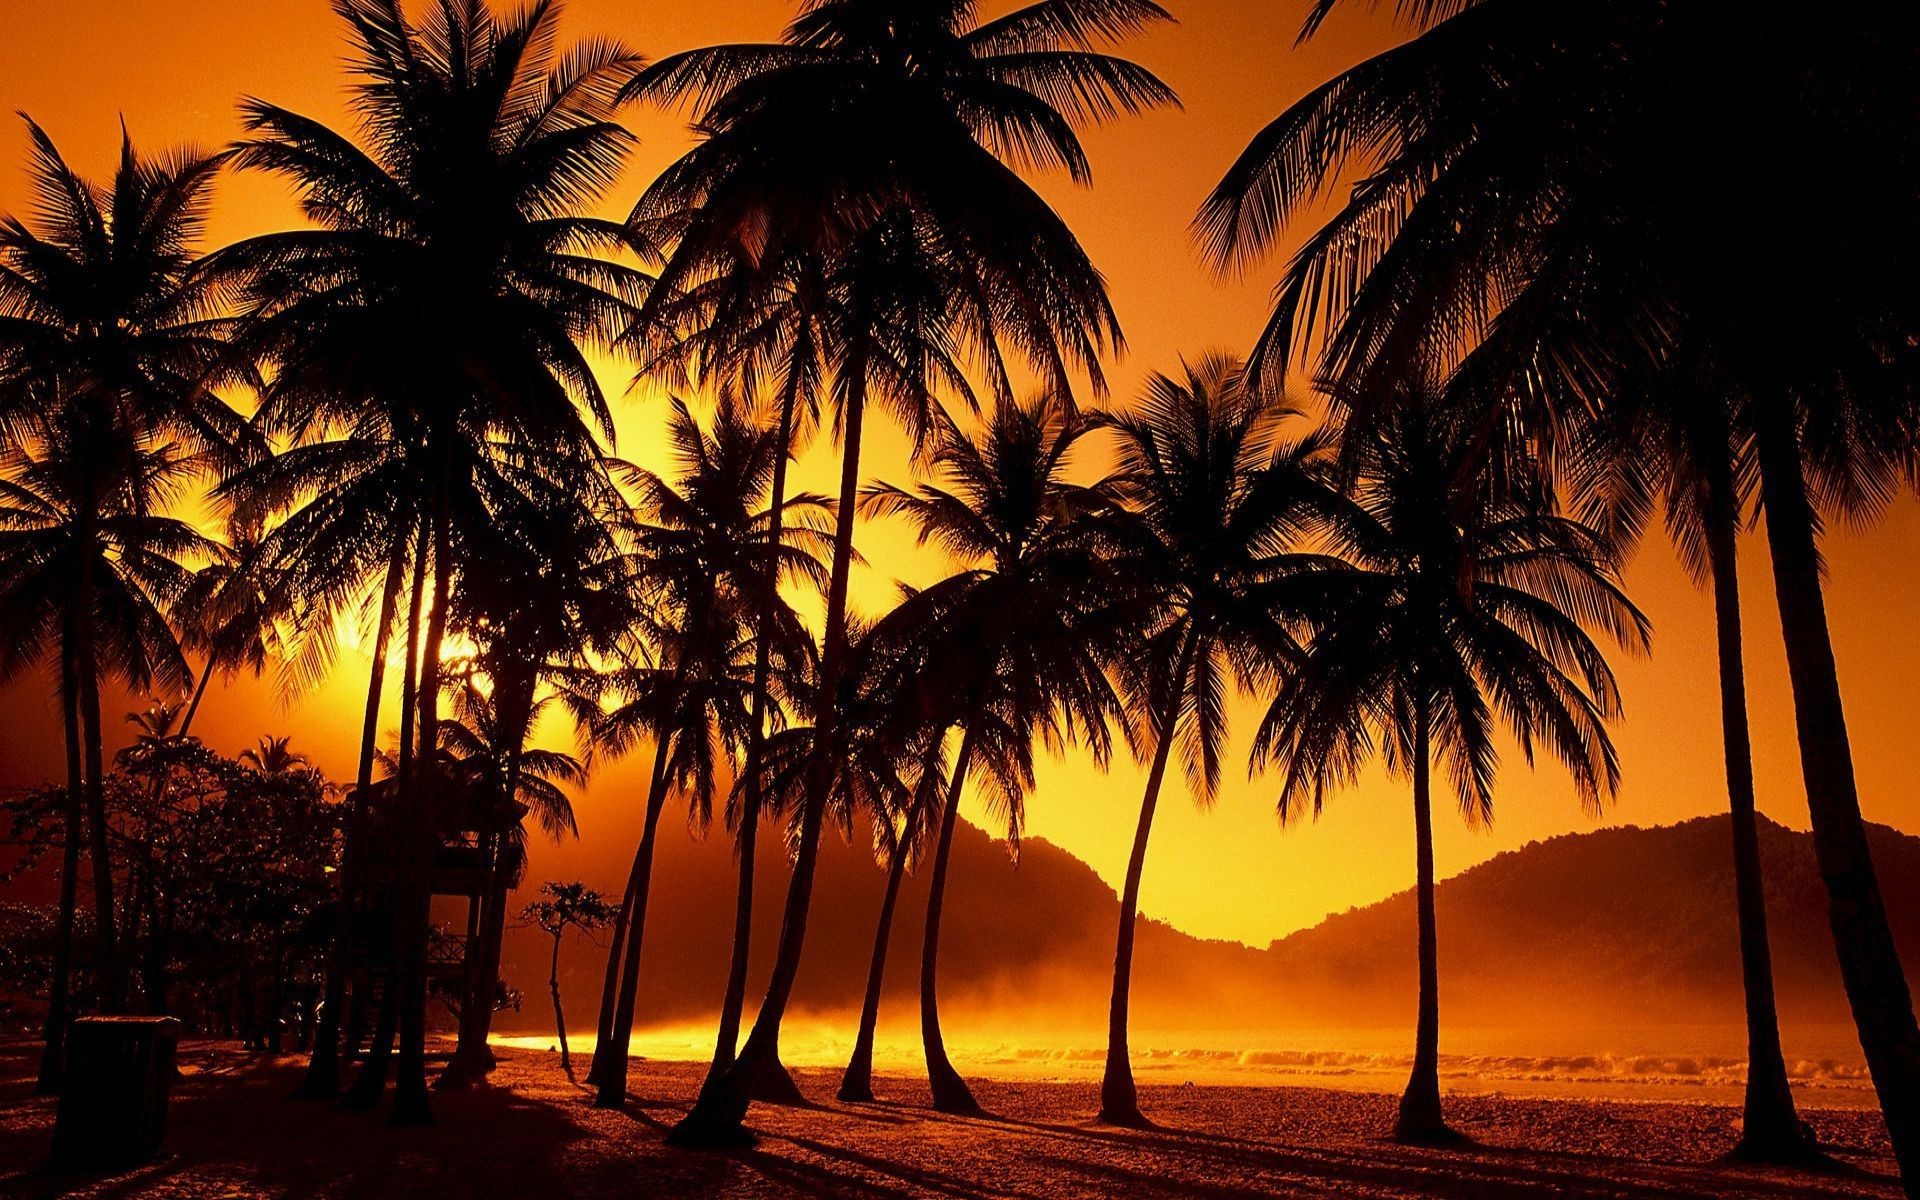 sunset palm trees wallpaper 62 images